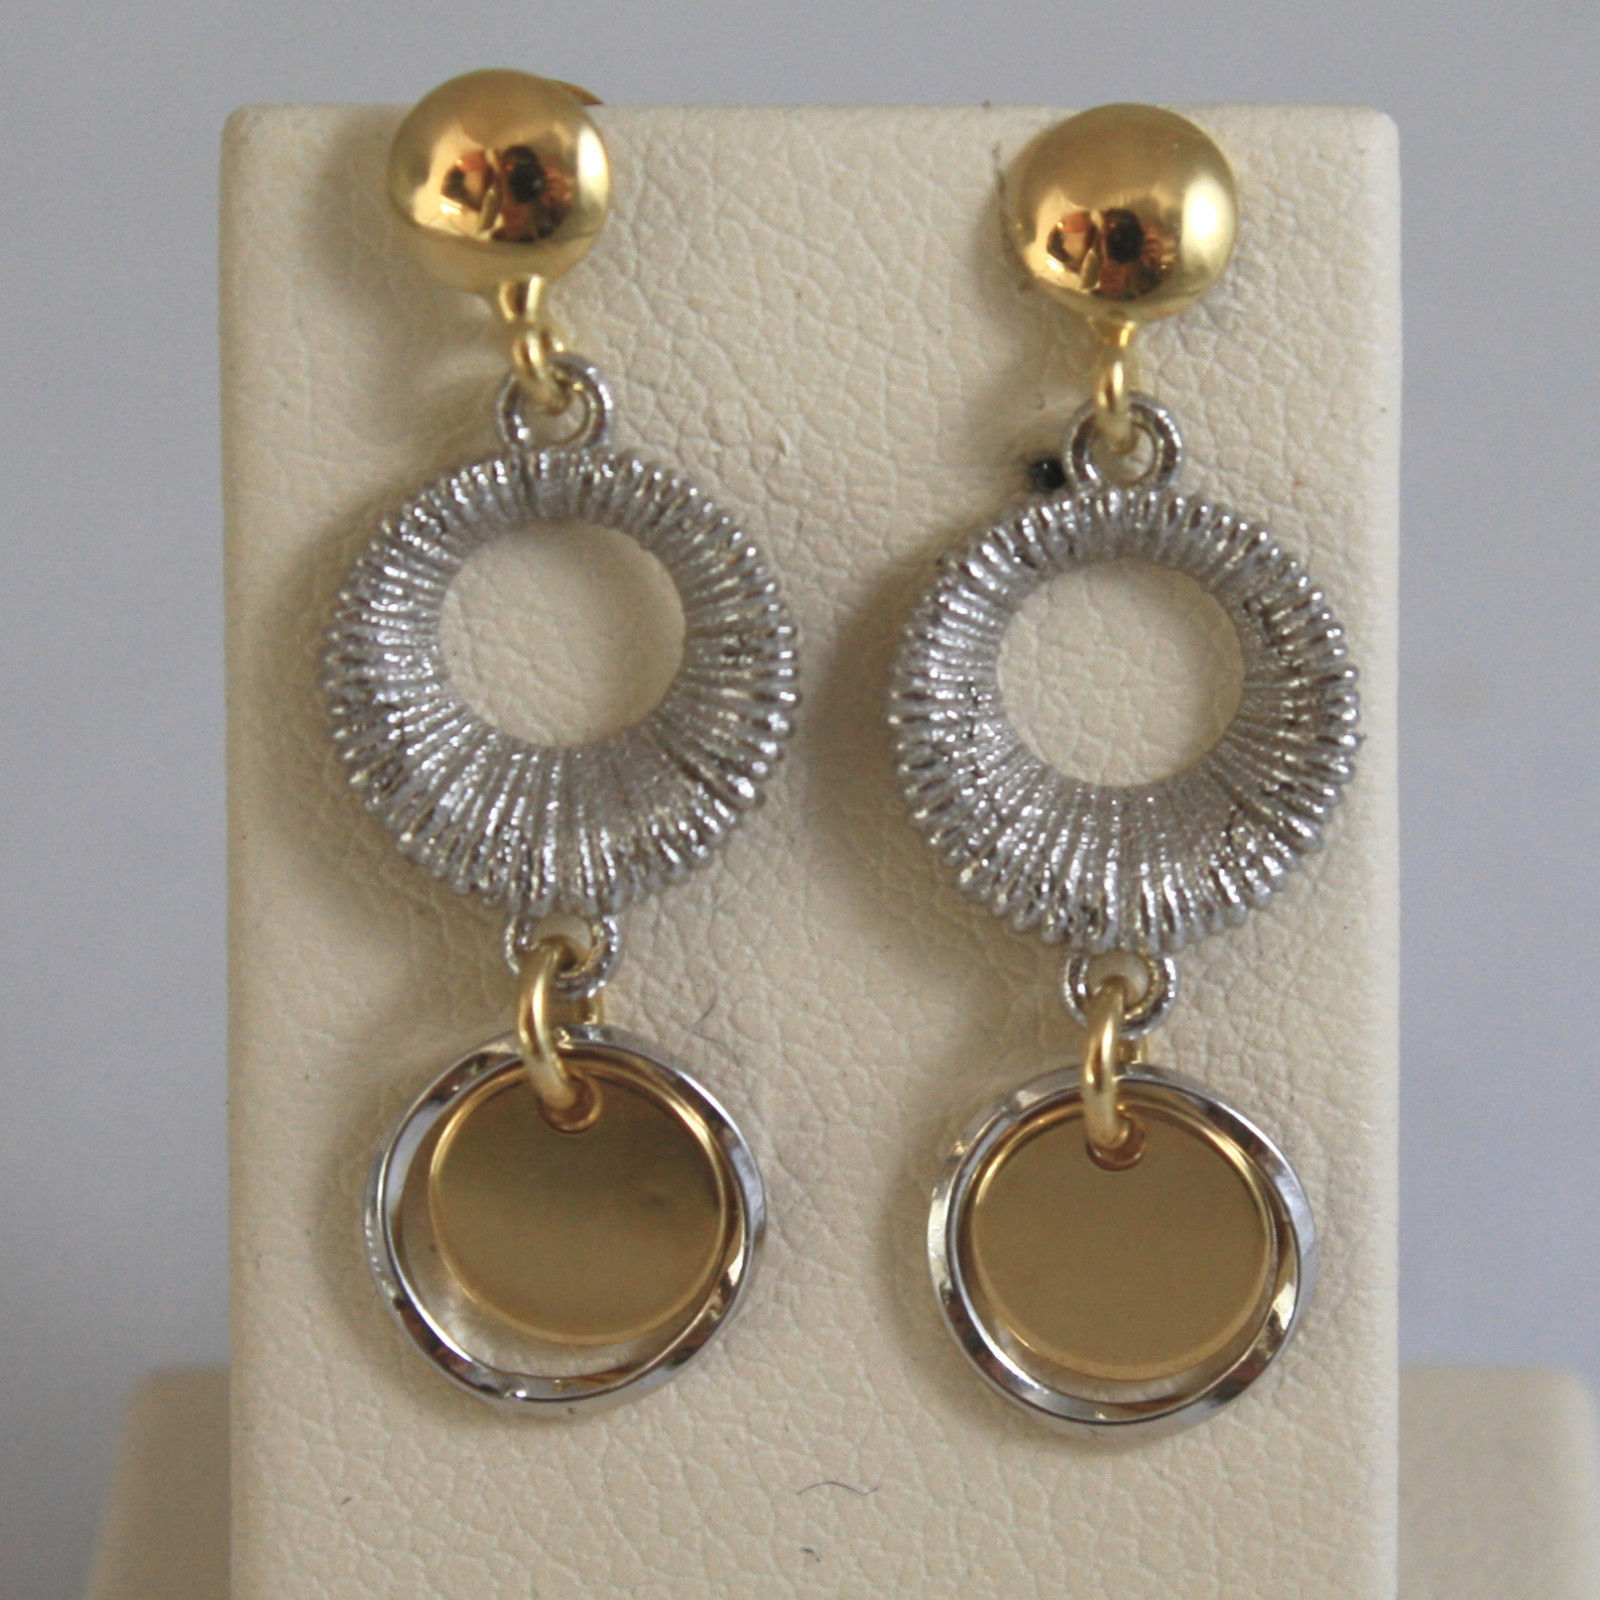 SOLID 18K YELLOW AND WHITE GOLD EARRINGS, WITH WHEELS, MADE IN ITALY